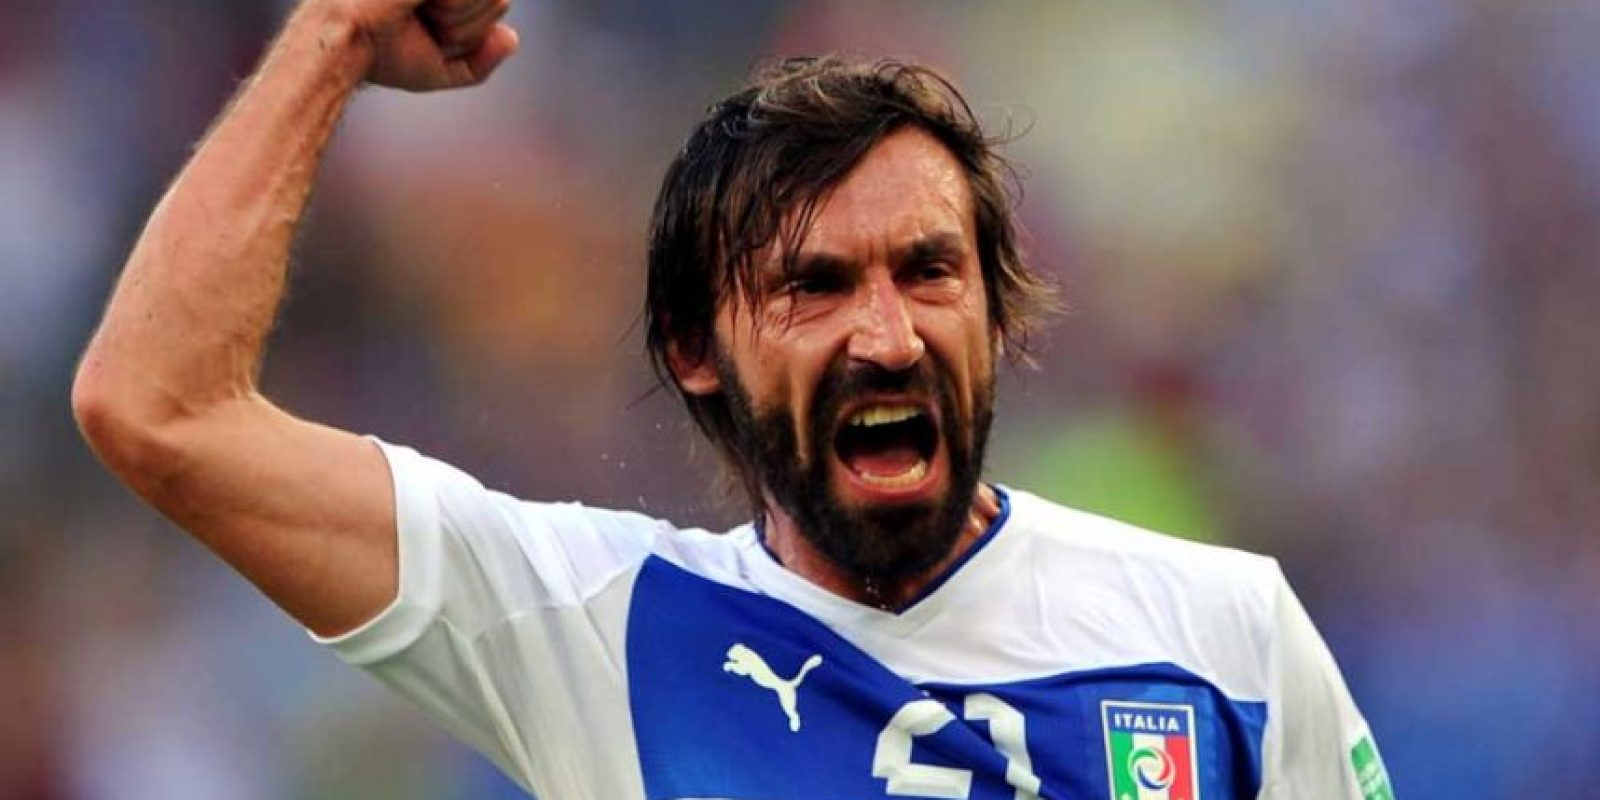 MEDIOS: Andrea Pirlo Foto: Getty Images